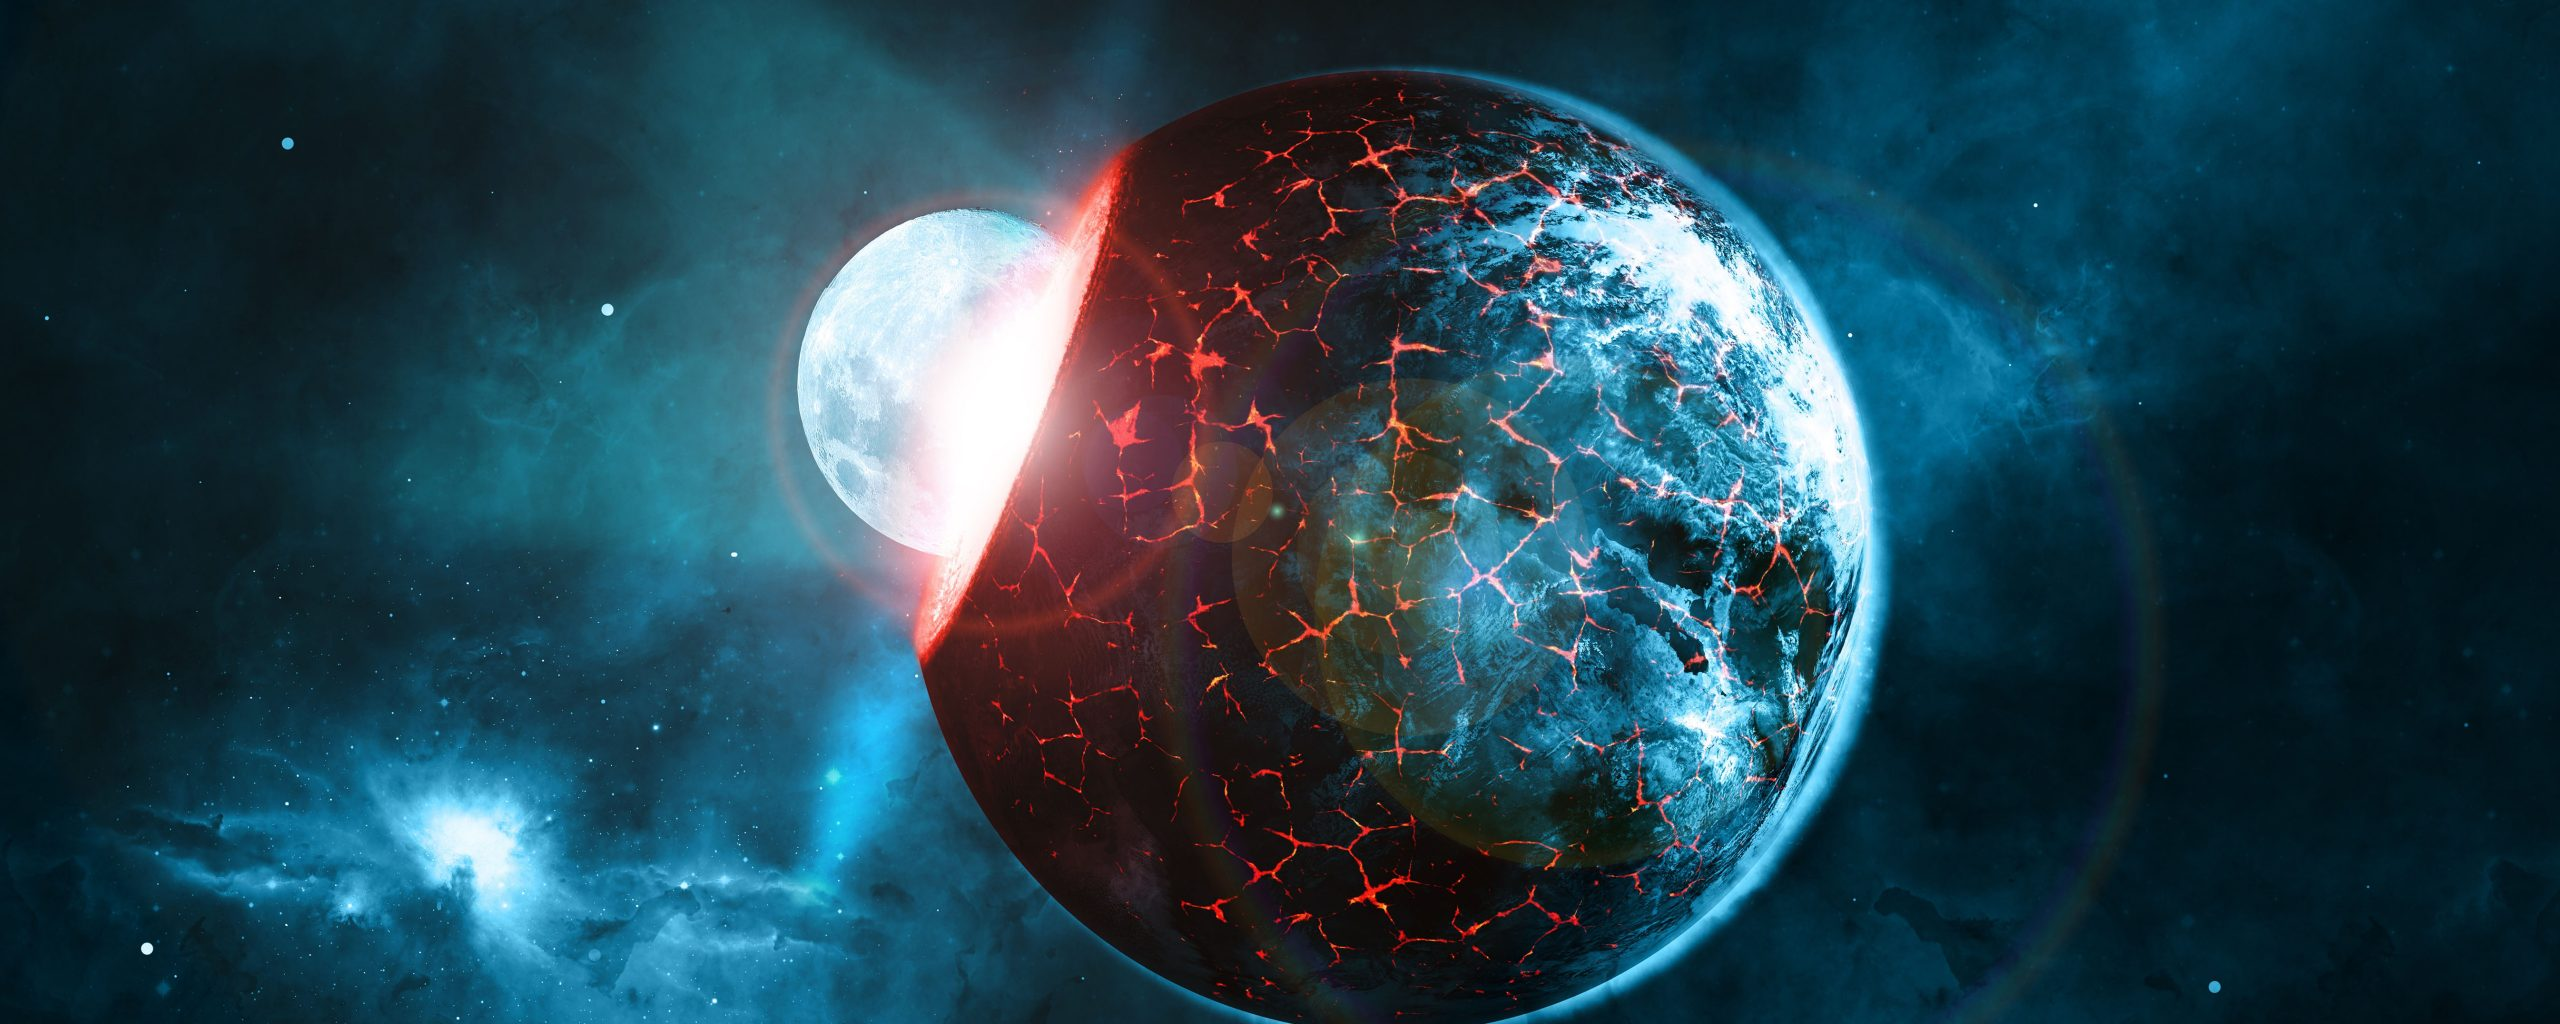 Planets Space Blue Red Collision Stars 4k Wallpaper Best